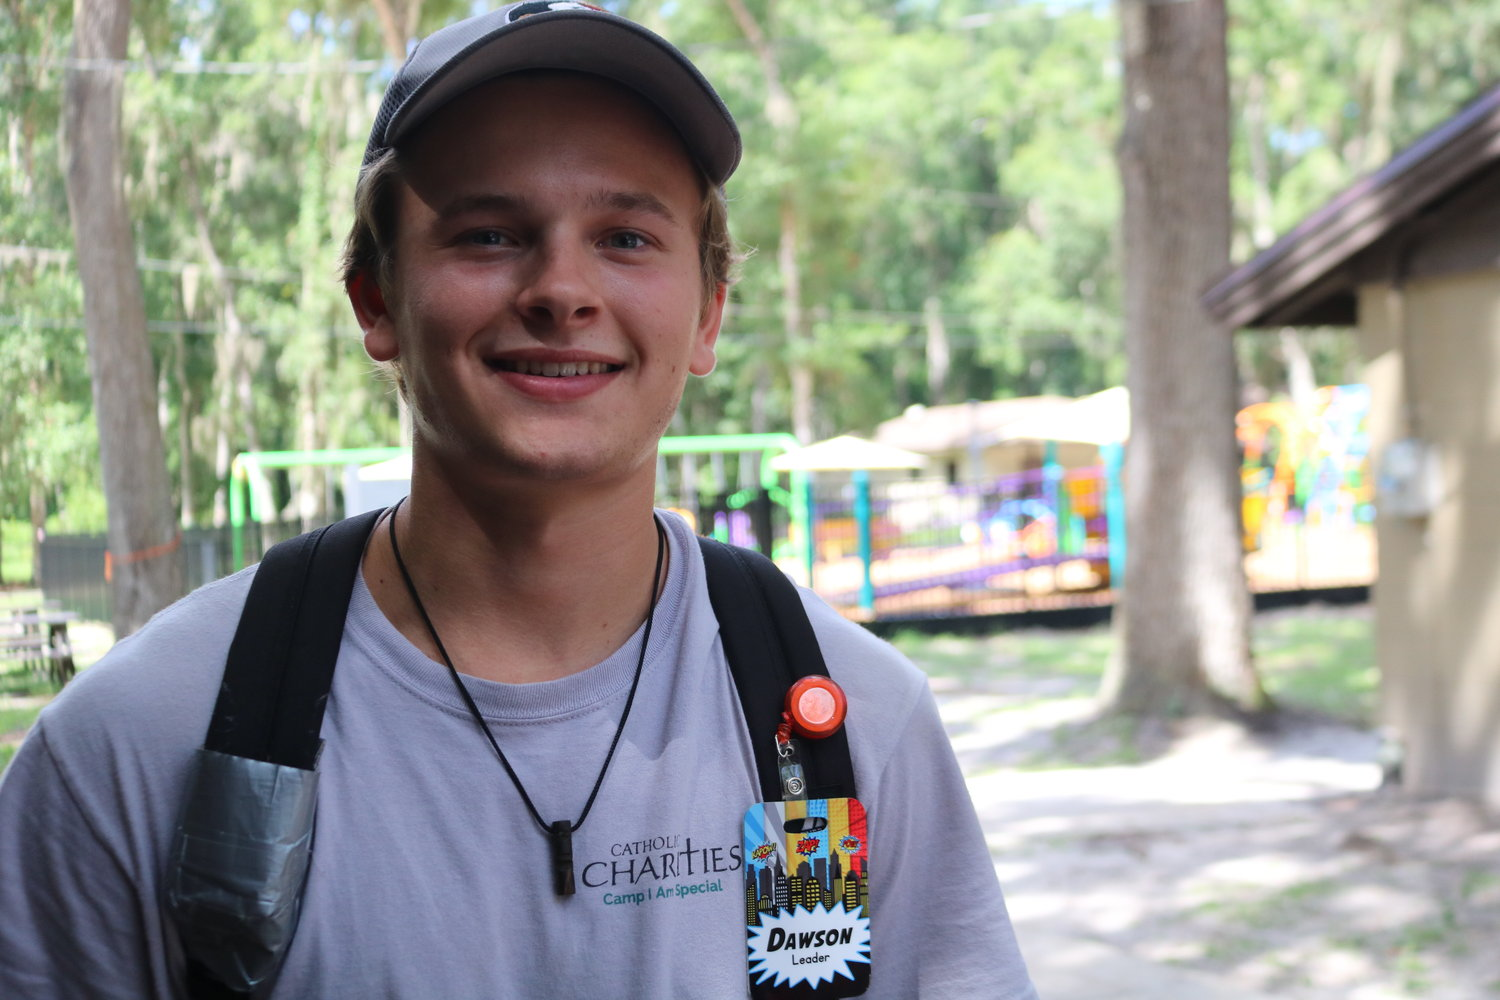 "Camp ""Buddy"" and Leader, Dawson Wakefield said although he's looking forward to attending FSU, he'll definitely be back to volunteer at Camp I Am Special again."